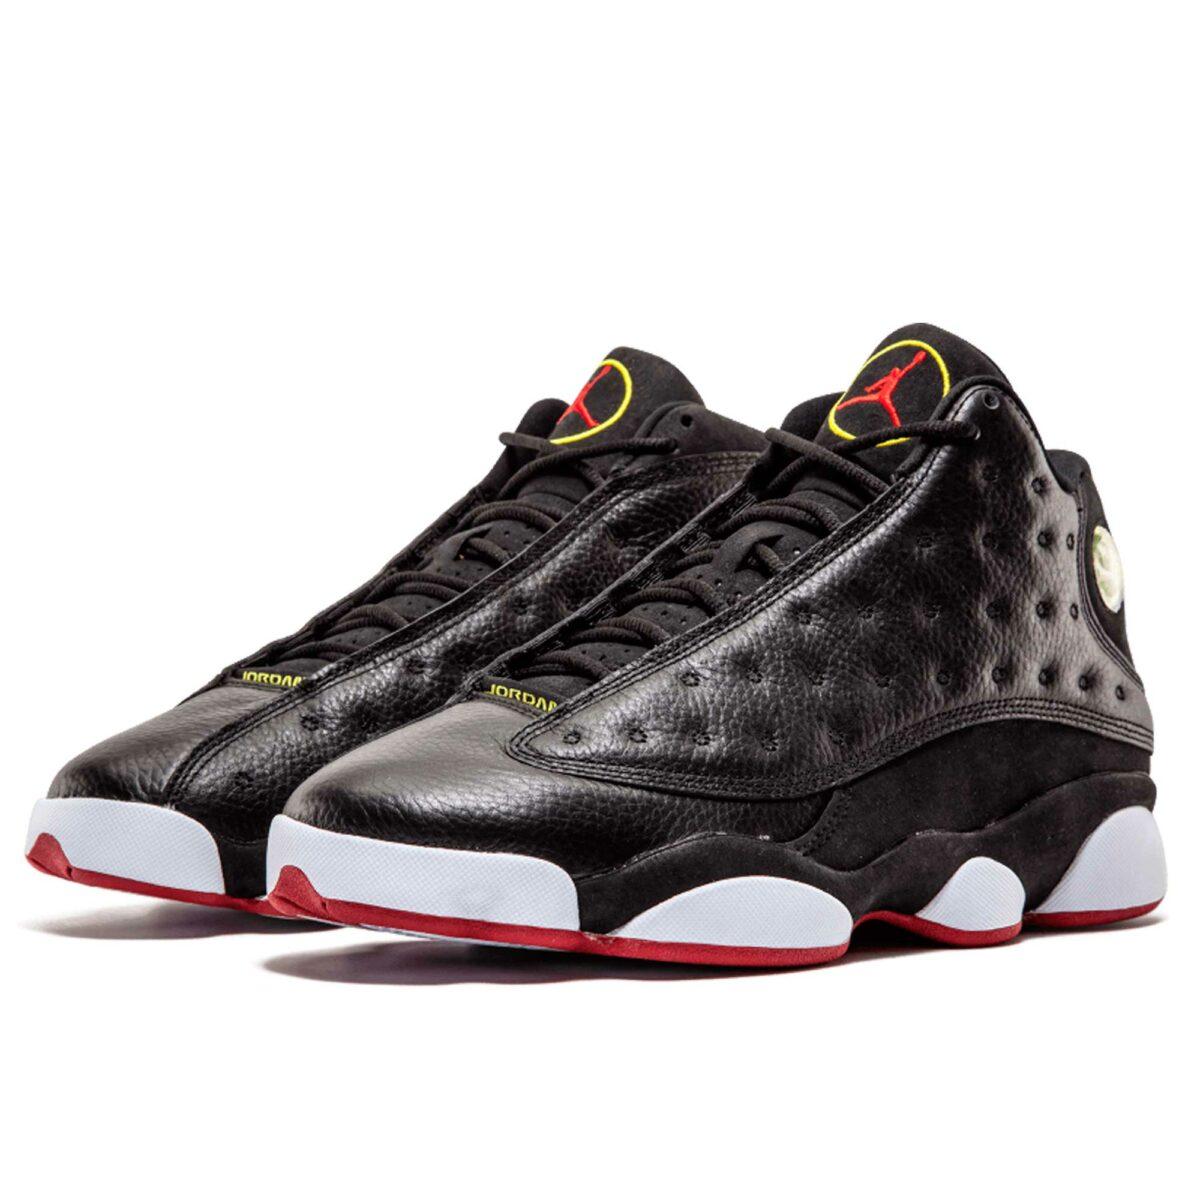 nike air Jordan retro 13 playoffs 414571-001 купить